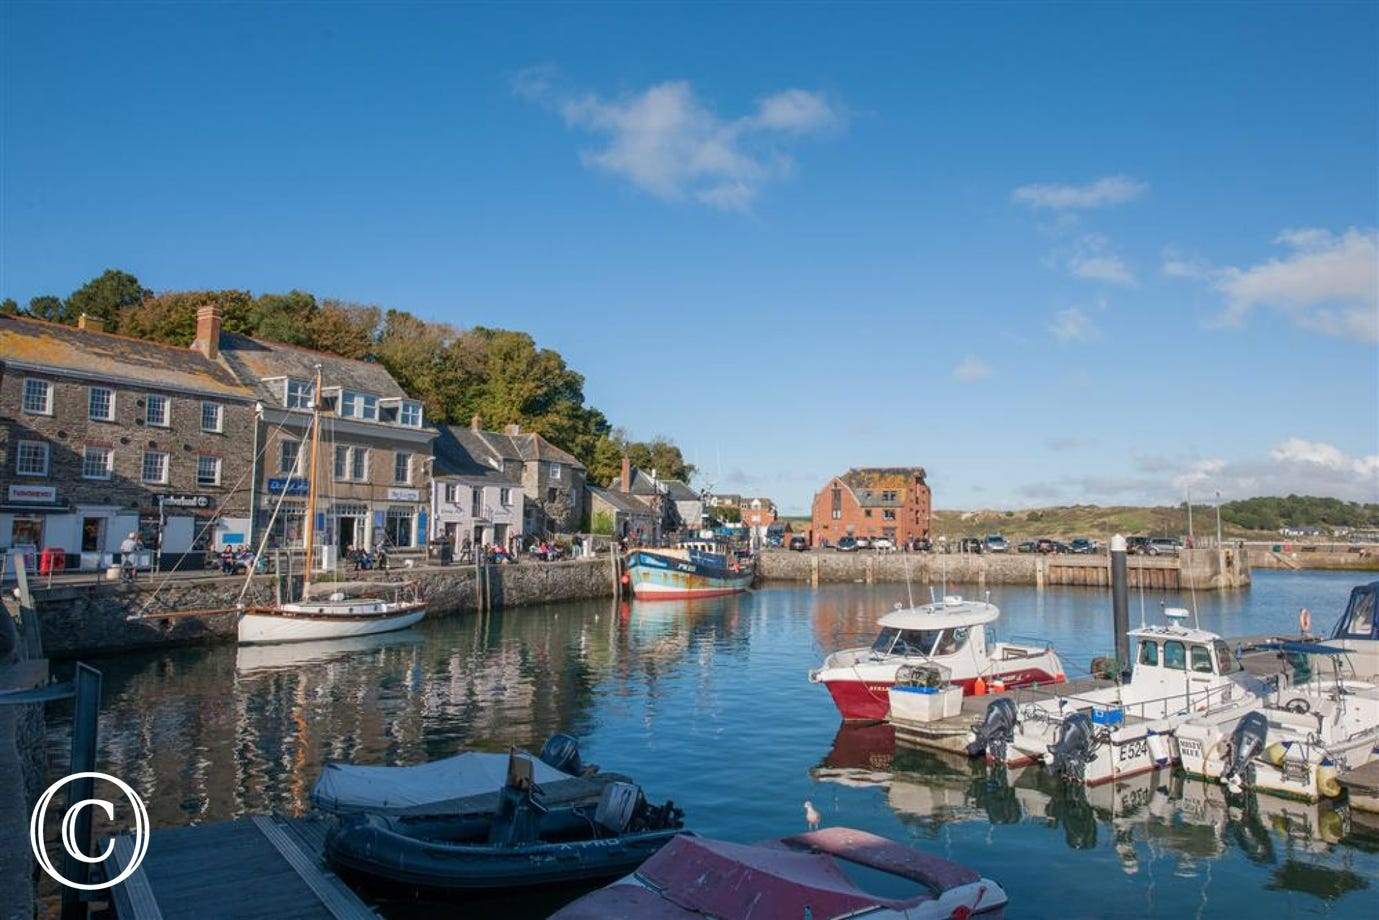 Padstow is just down the road